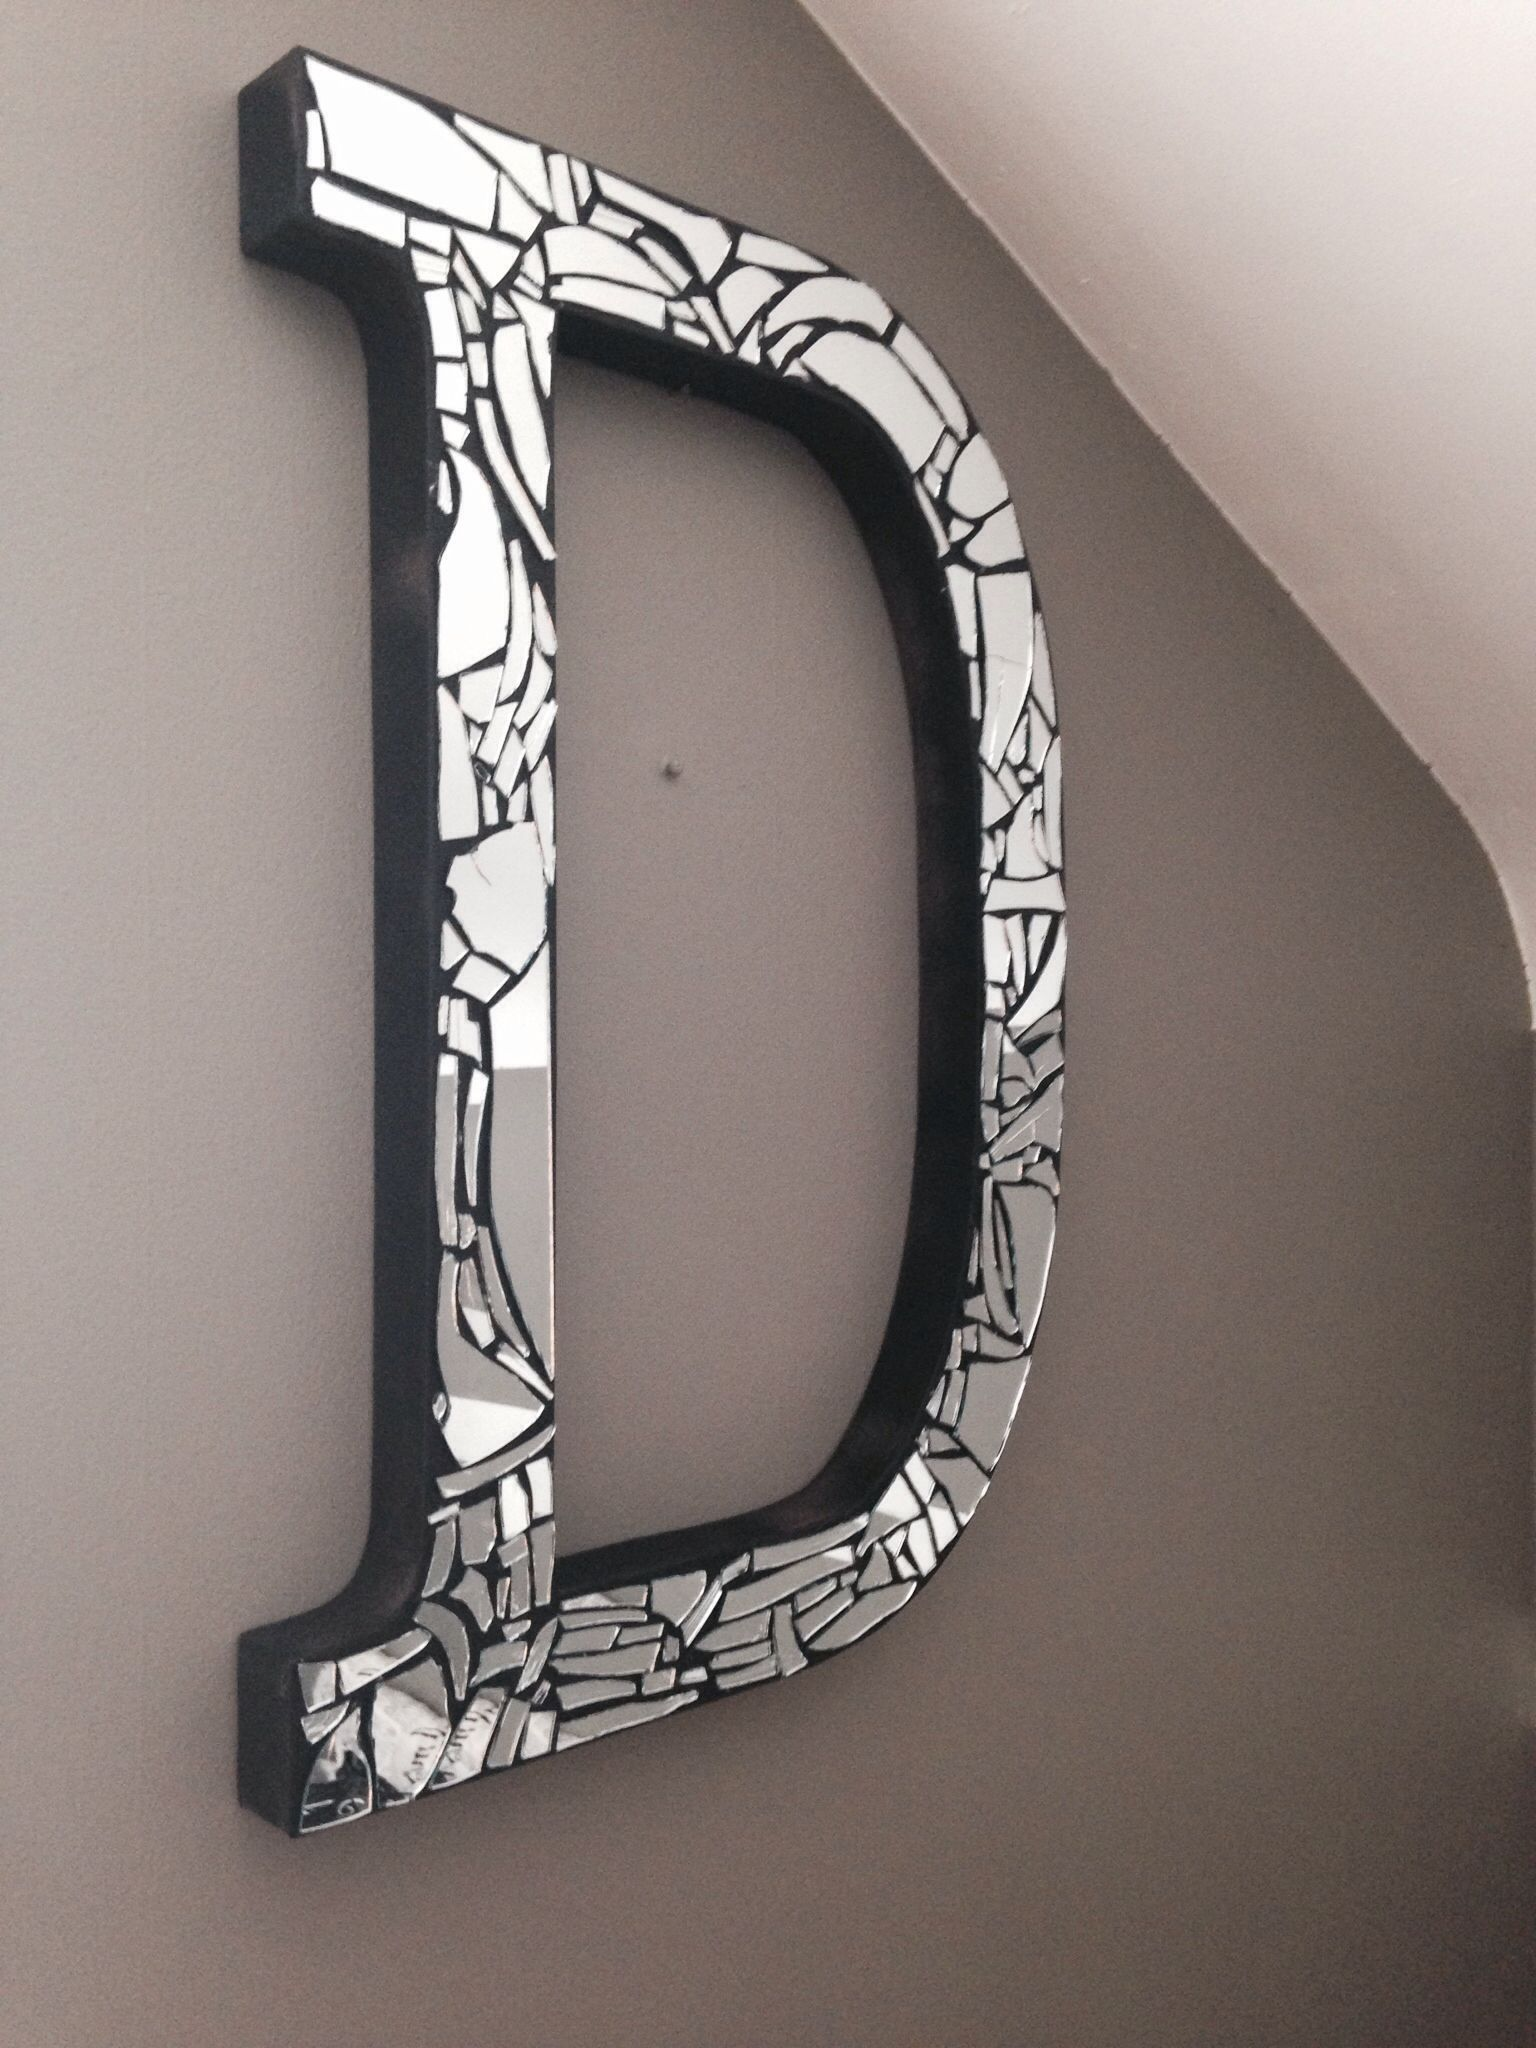 Broken Mirror Art Things Needed A Glue Gun Hammer Sheet And Anything You Want To Place On